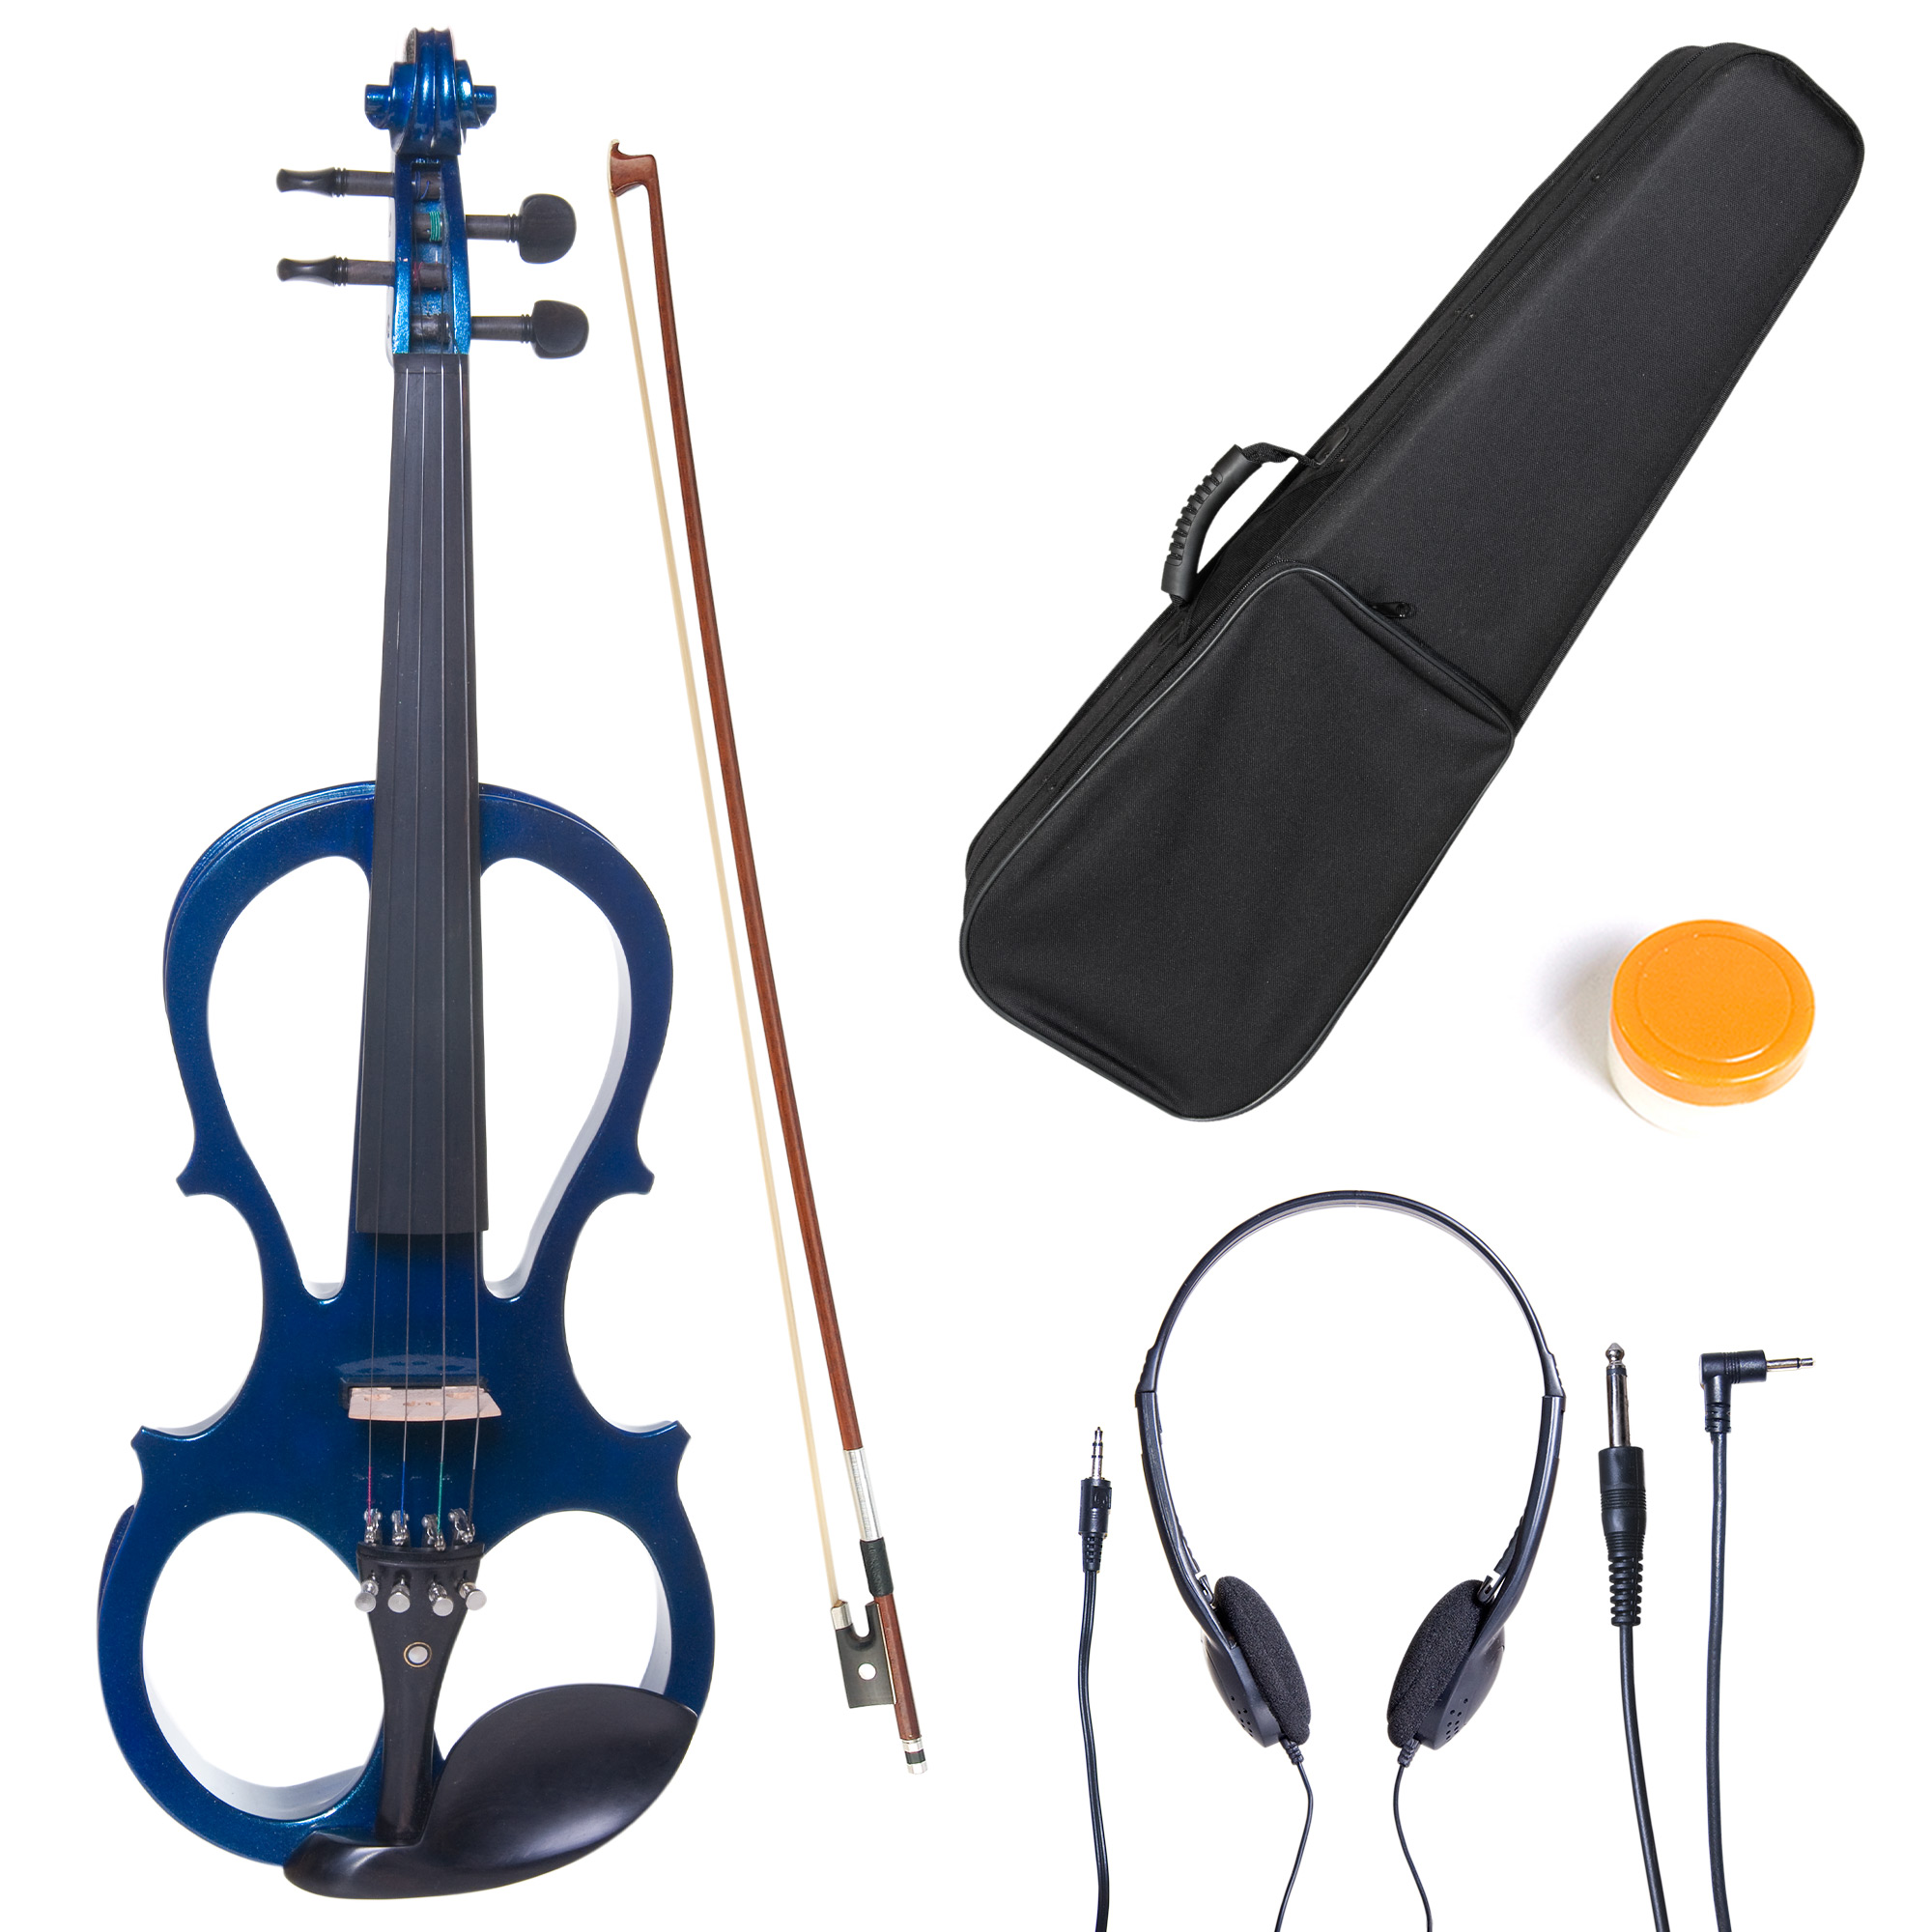 Cecilio Full Size Left-Handed Solid Wood Electric Silent Violin with Ebony Fittings-L4/4CEVN-L1BL Metallic Blue